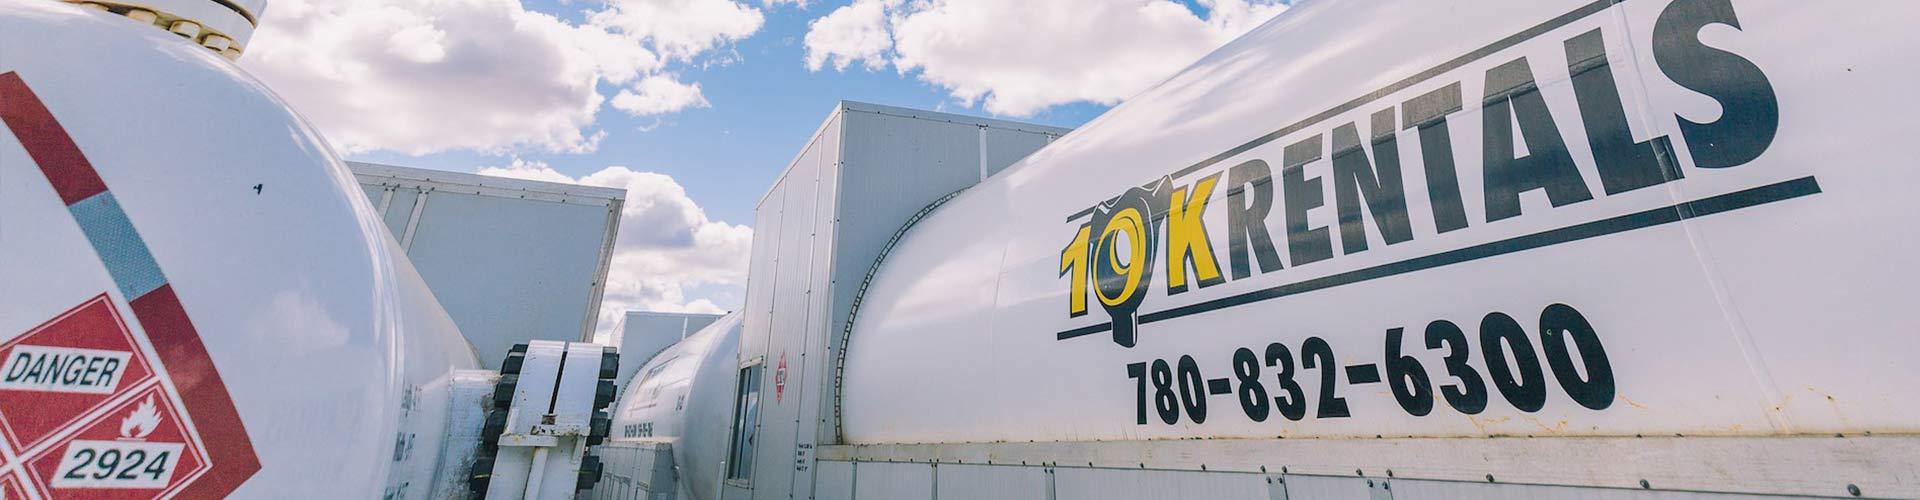 Oilfield storage tanks, oilfield storage tank, prevent well freezing, frac flowback